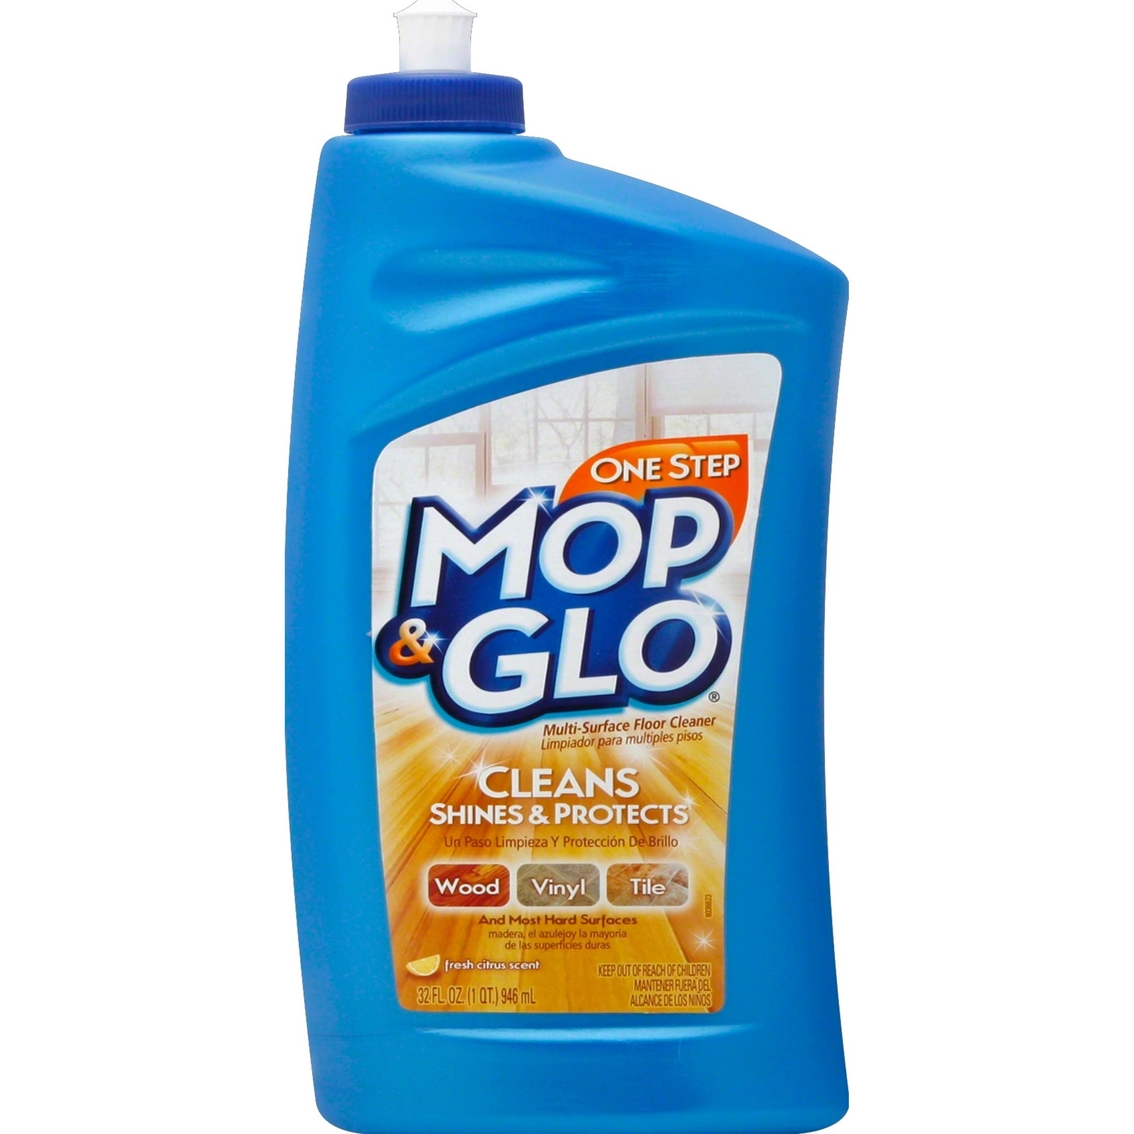 Mop Amp Glo One Step Multi Surface Floor Cleaner 32 Oz